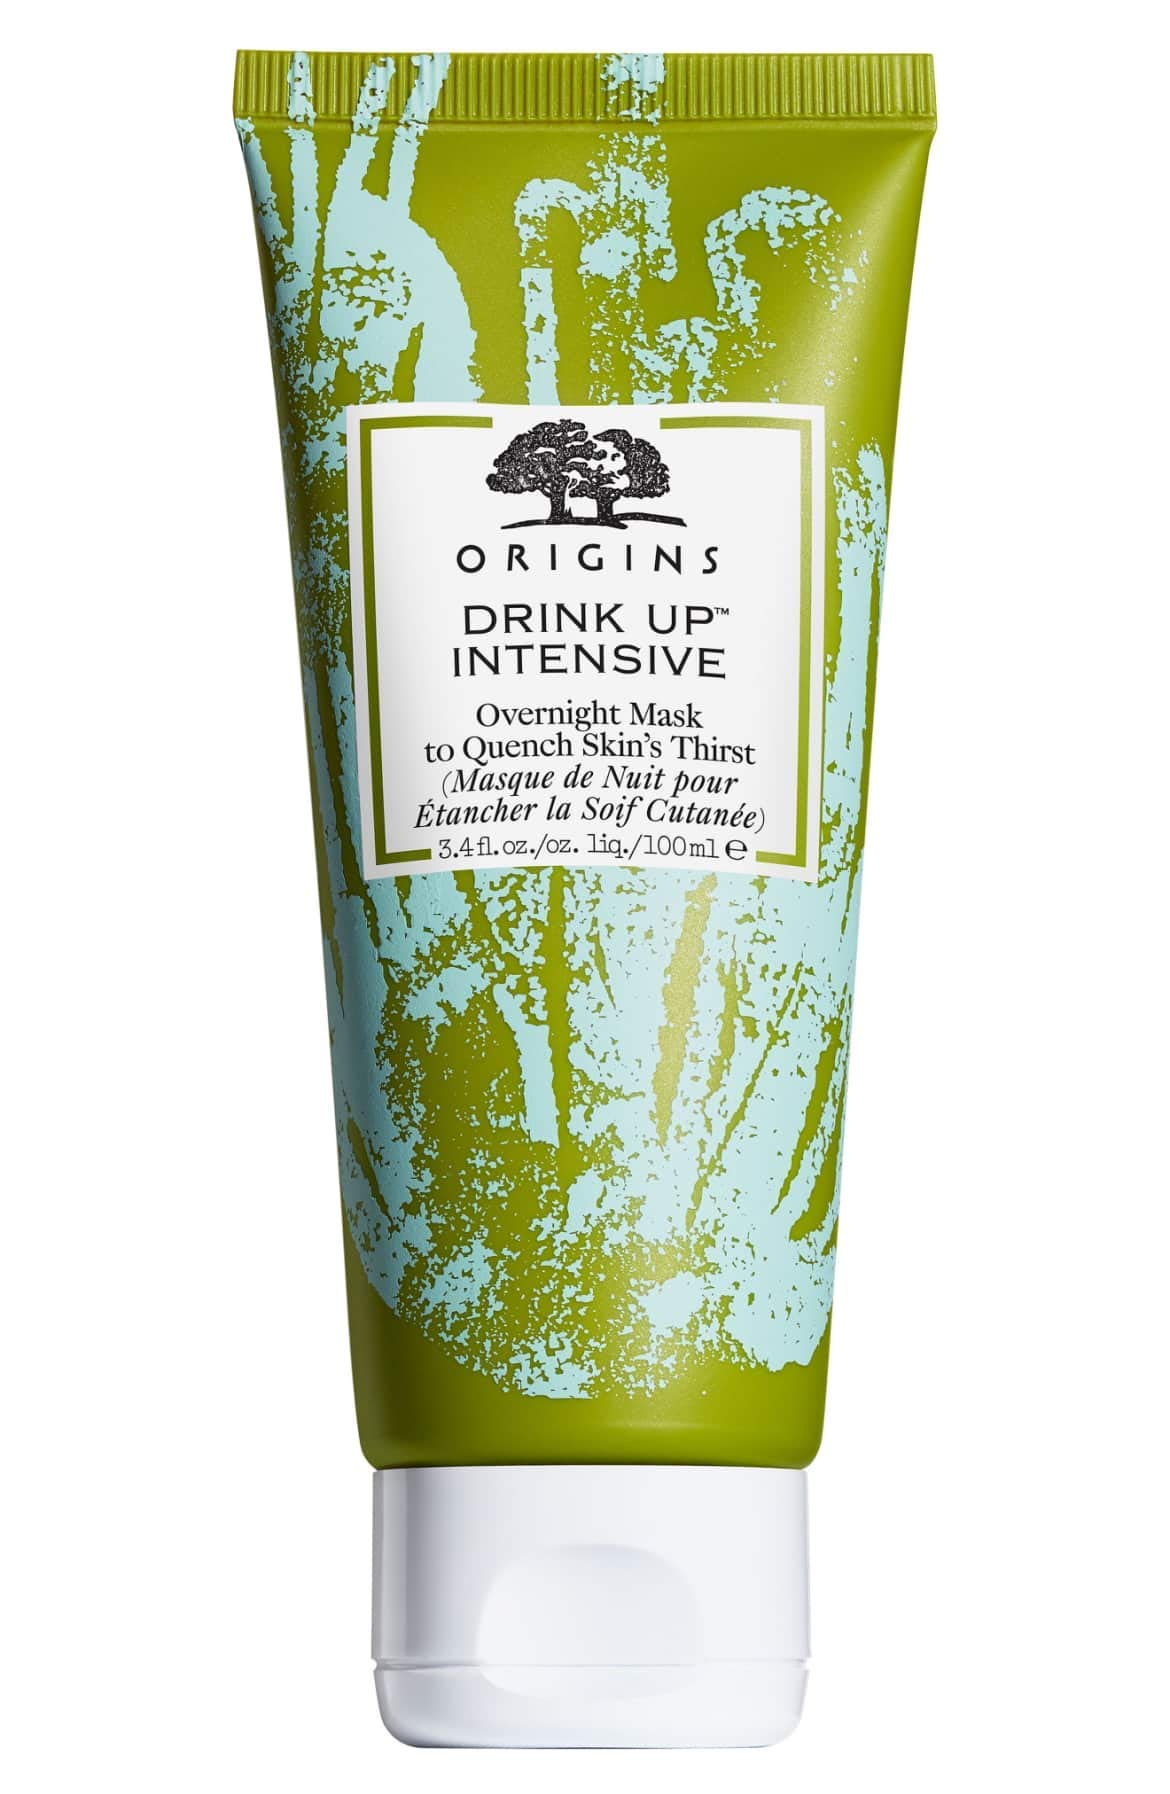 ORIGINS Drink Up-Intensive Overnight Mask to Quench Skin's Thirst, 3.4 Fluid Ounce by Origins